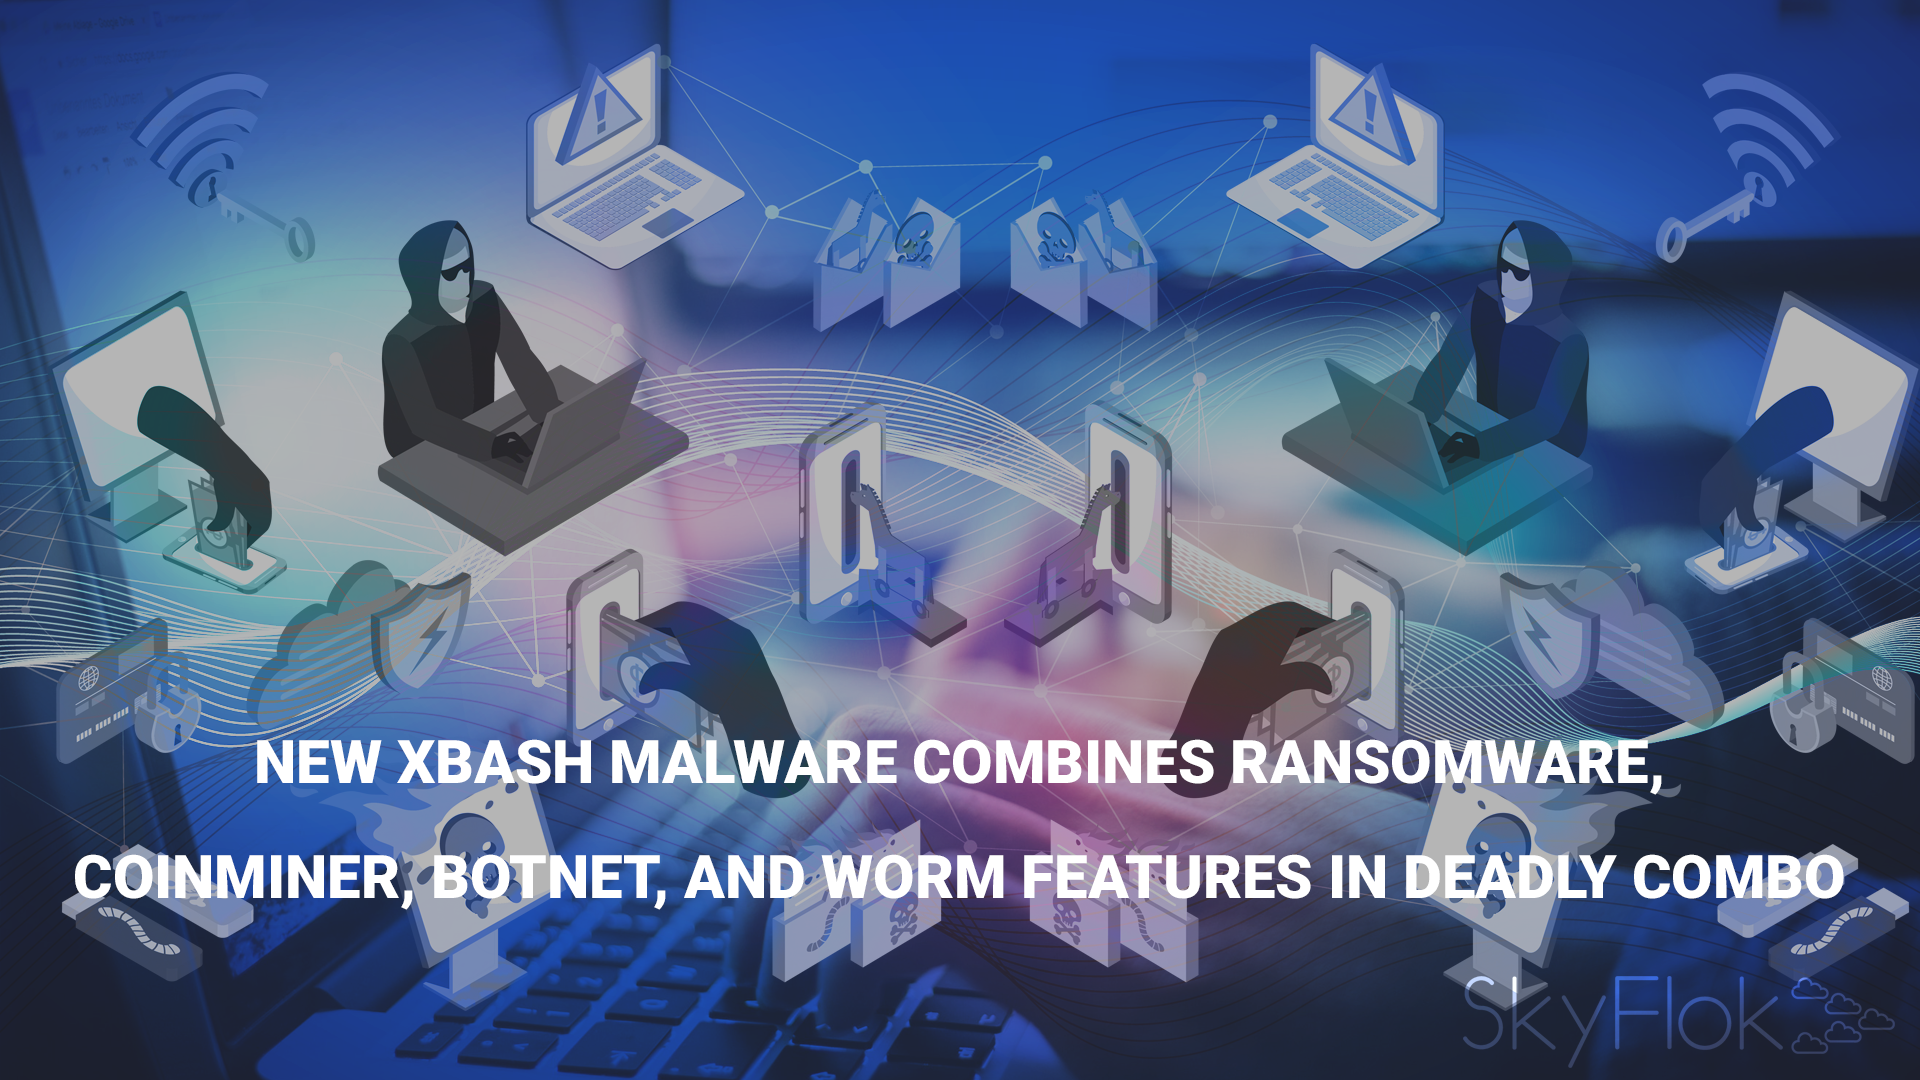 New XBash malware combines ransomware, coinminer, botnet, and worm features in deadly combo